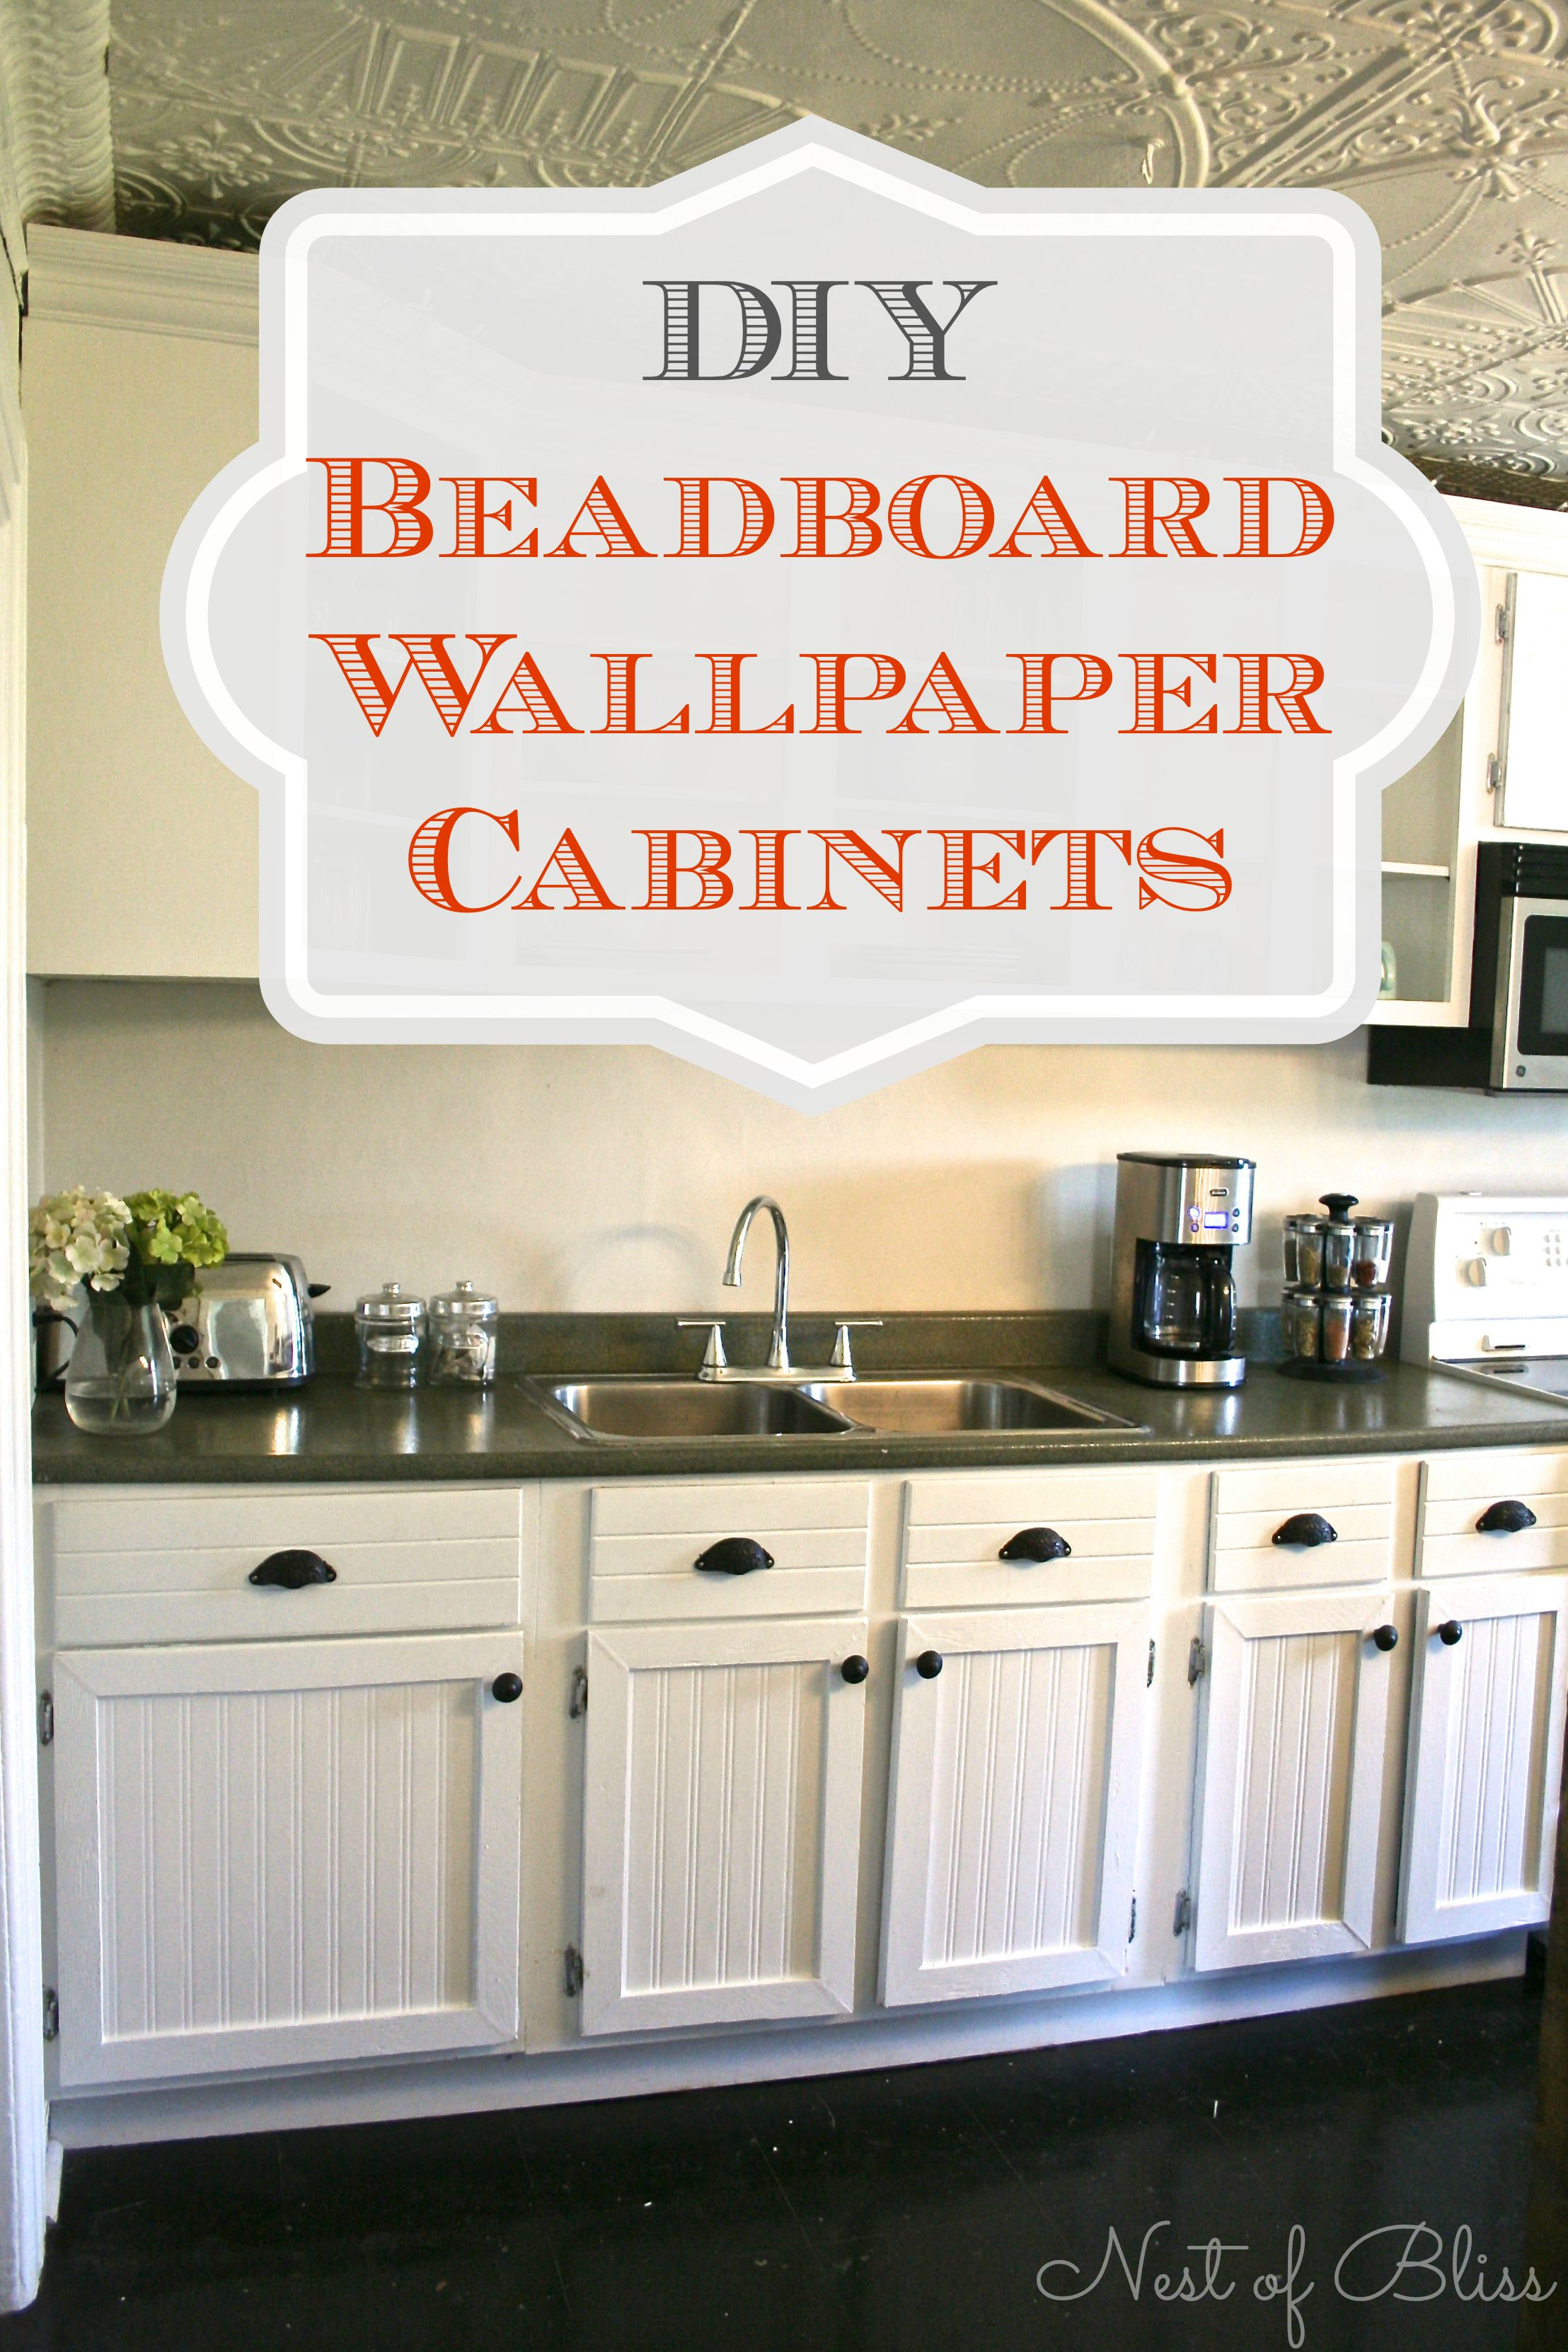 Diy Beadboard Wallpaper Cabinets Promo Jpg 2 216 3 323 Pixels Wallpaper Cabinets Diy Kitchen Cabinets Beadboard Wallpaper